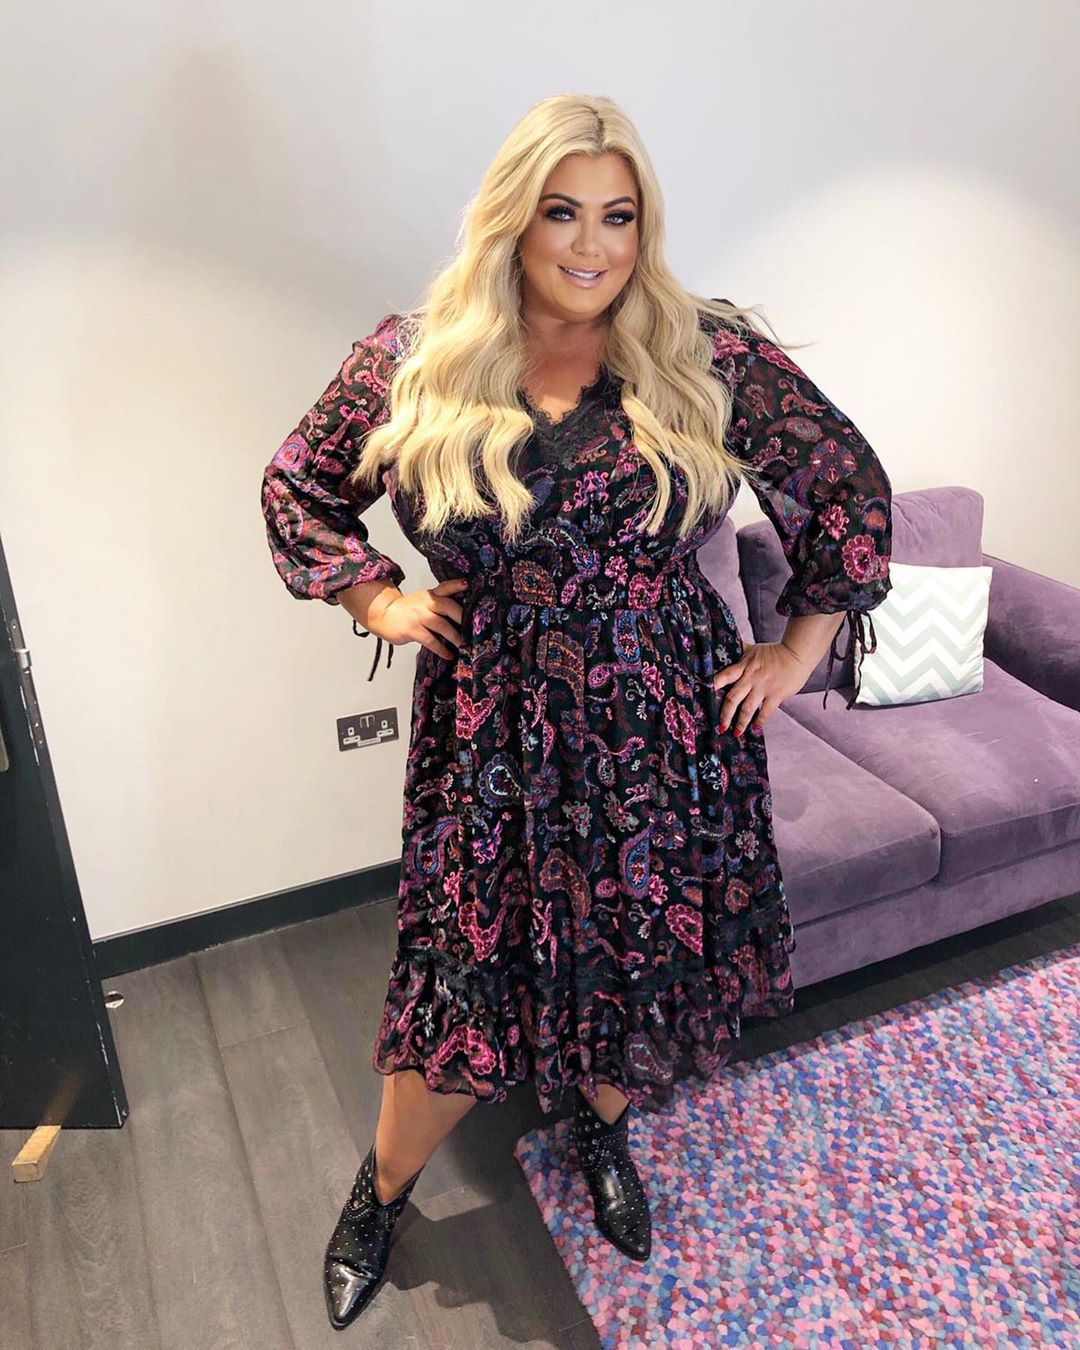 Image may contain: reality TV rich list, UK, reality TV, net worth, earnings, money, salary, rich, worth, Gemma Collins, TOWIE, Couch, Furniture, Sleeve, Woman, Female, Shoe, Footwear, Dress, Person, Human, Clothing, Apparel